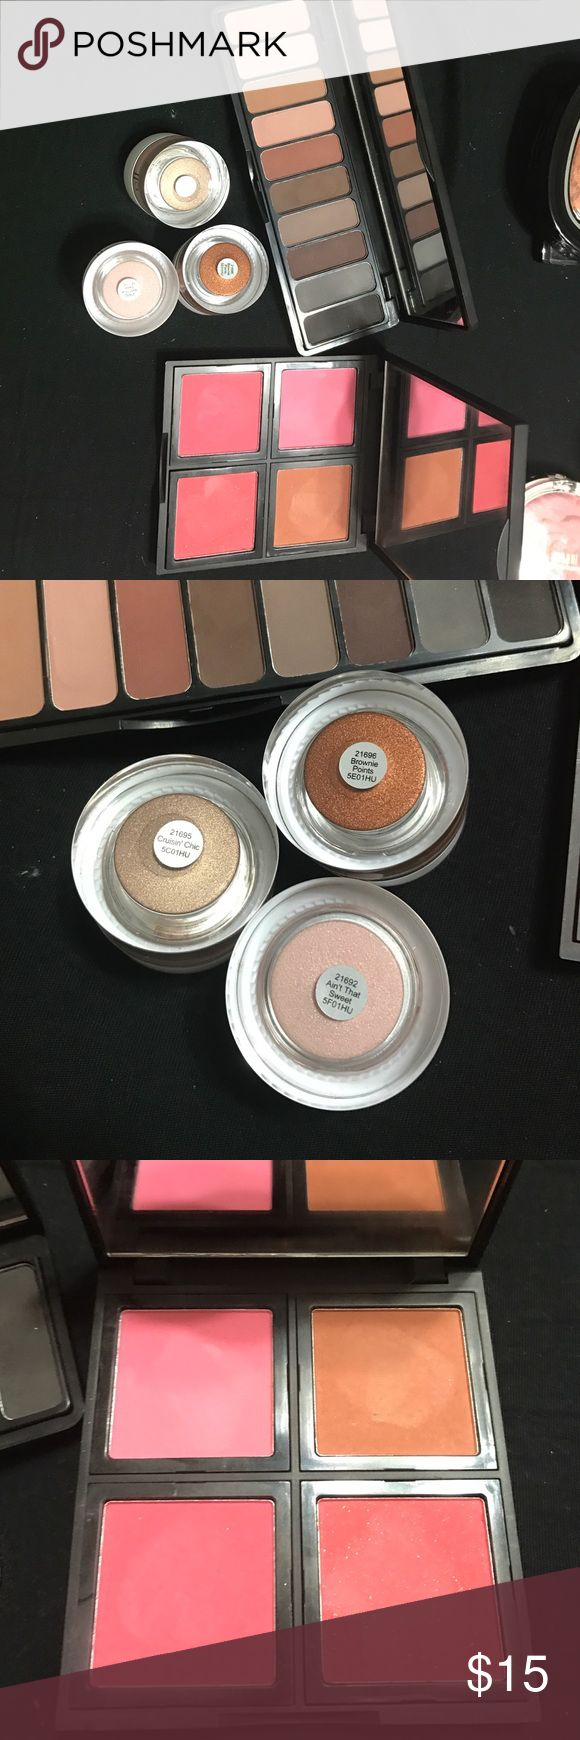 ELF makeup bundle ***Lightly used** - ELF makeup  - decluttering my collection so I NEED GONE. Check out more of my makeup. 💋 ELF Makeup